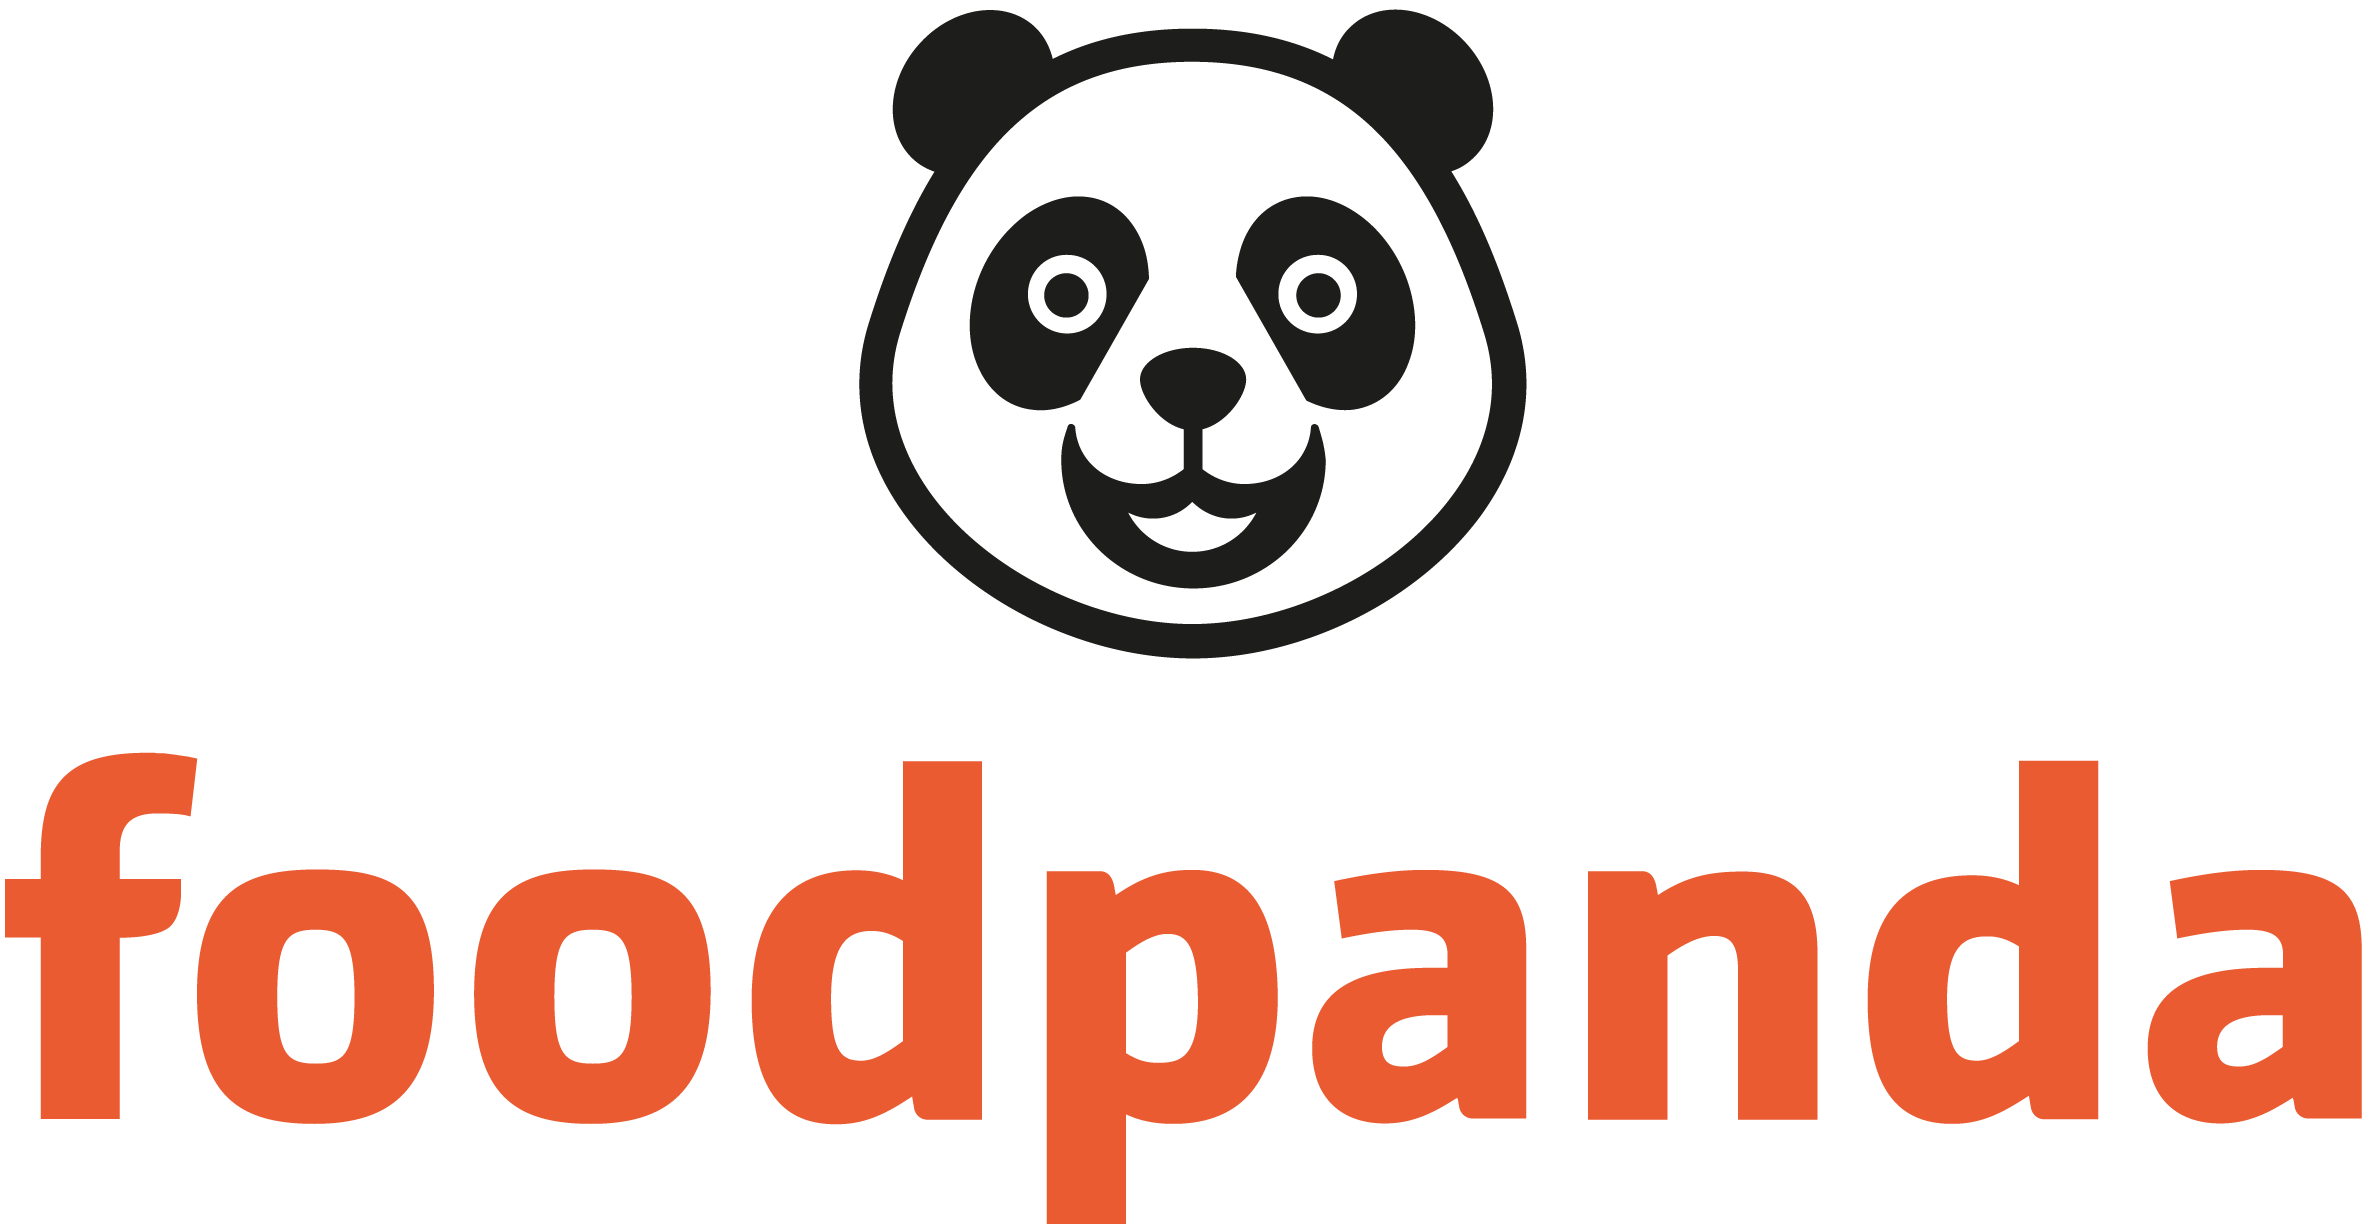 Foodpanda, appointment, Anshul Khandelwal, Marketing Head, NewsMobile, Startup, Start o Sphere, Mobile News, India